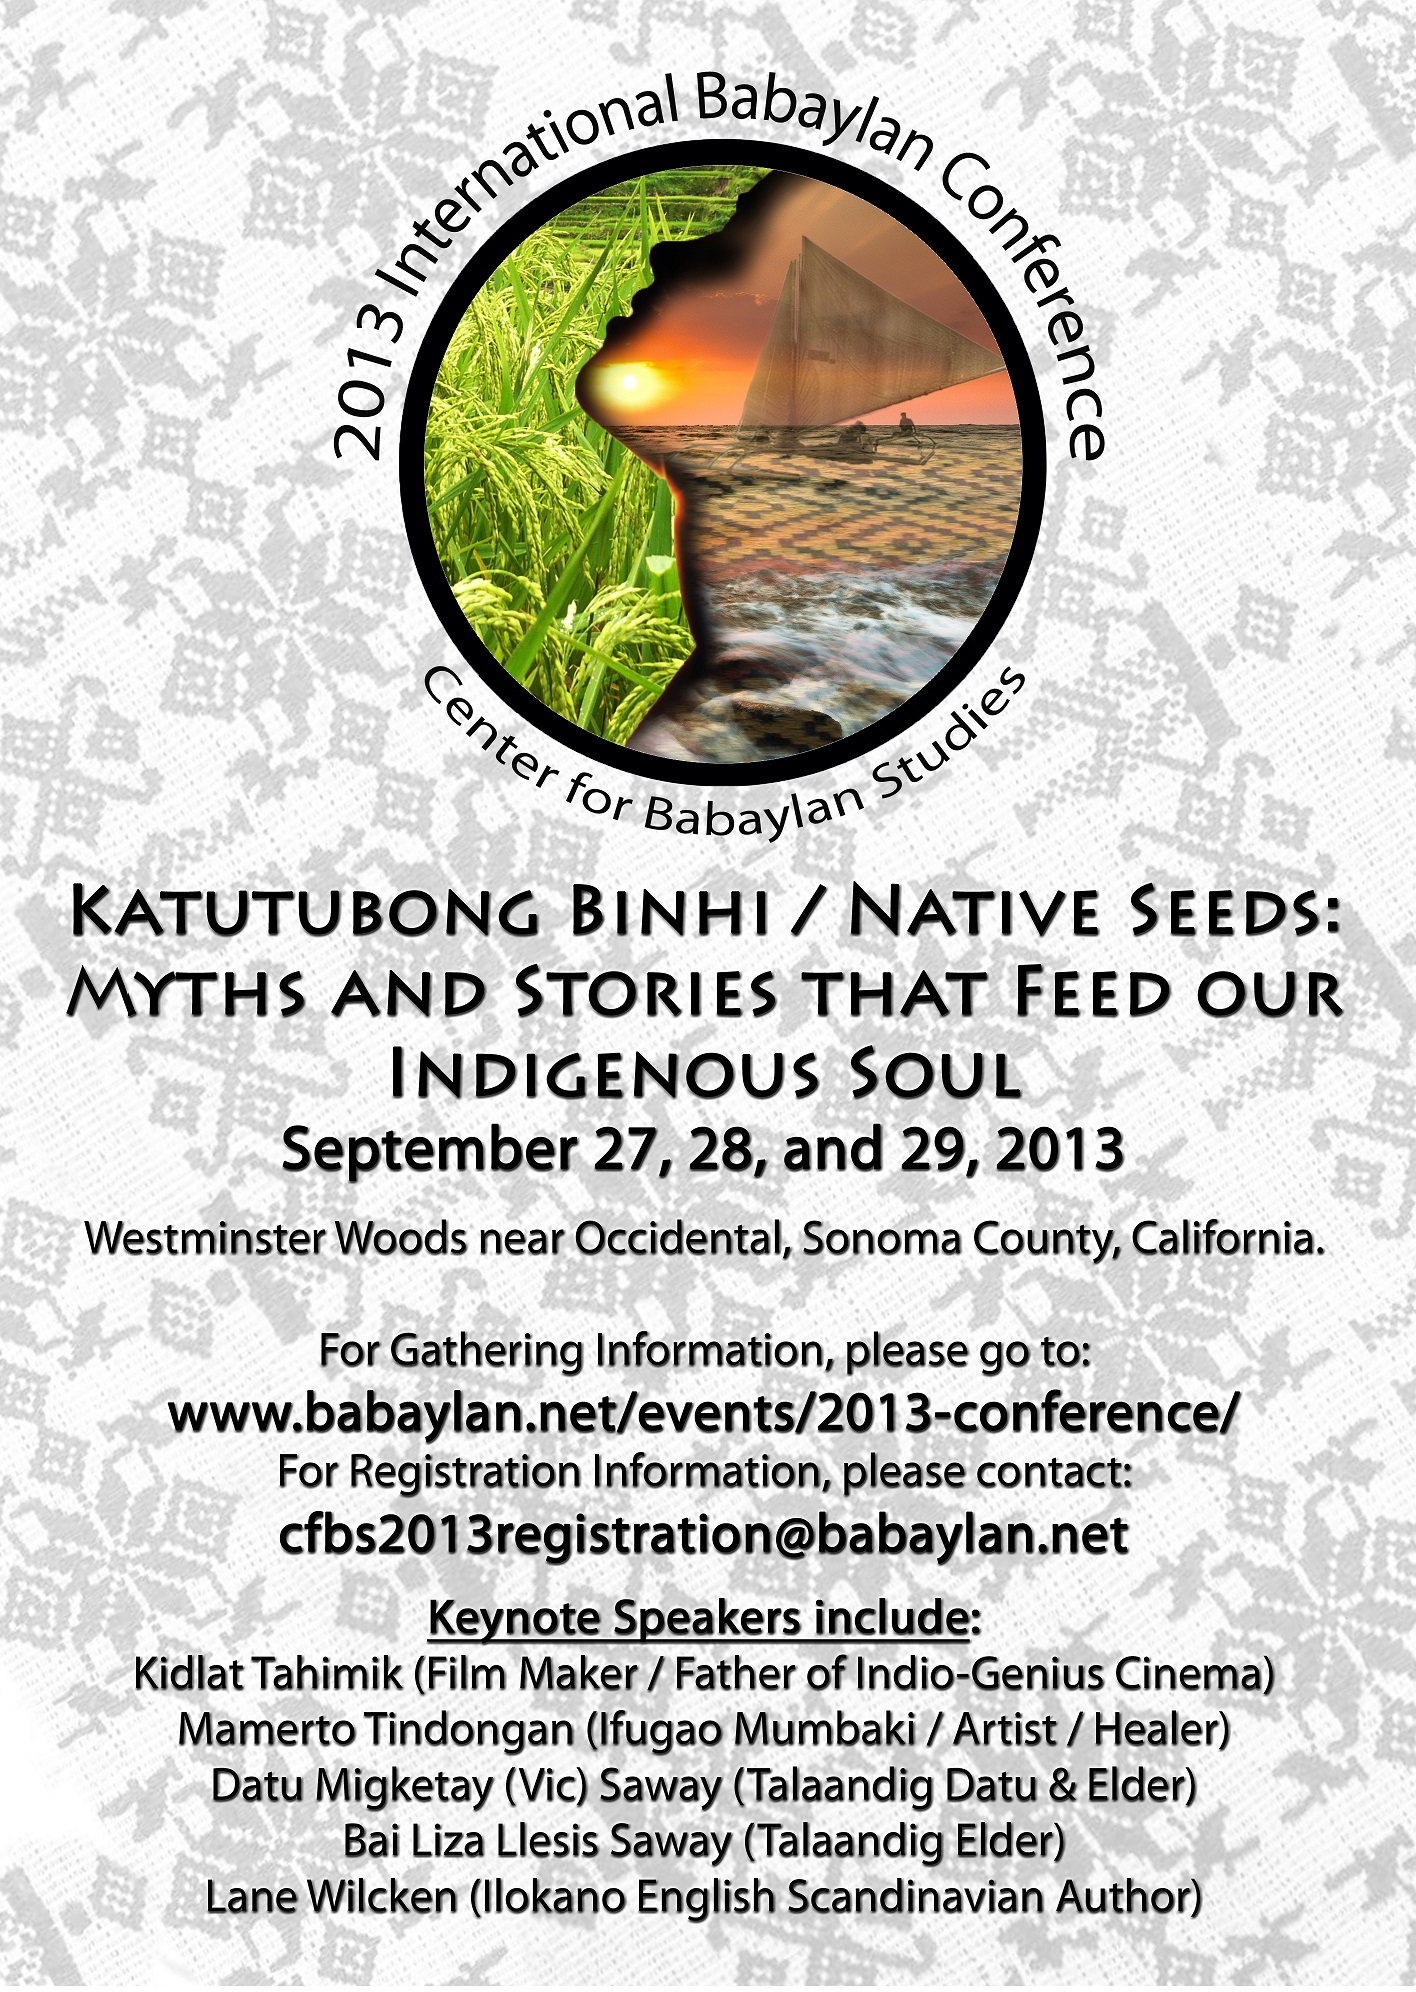 2nd Center for Babaylan Studies Conference